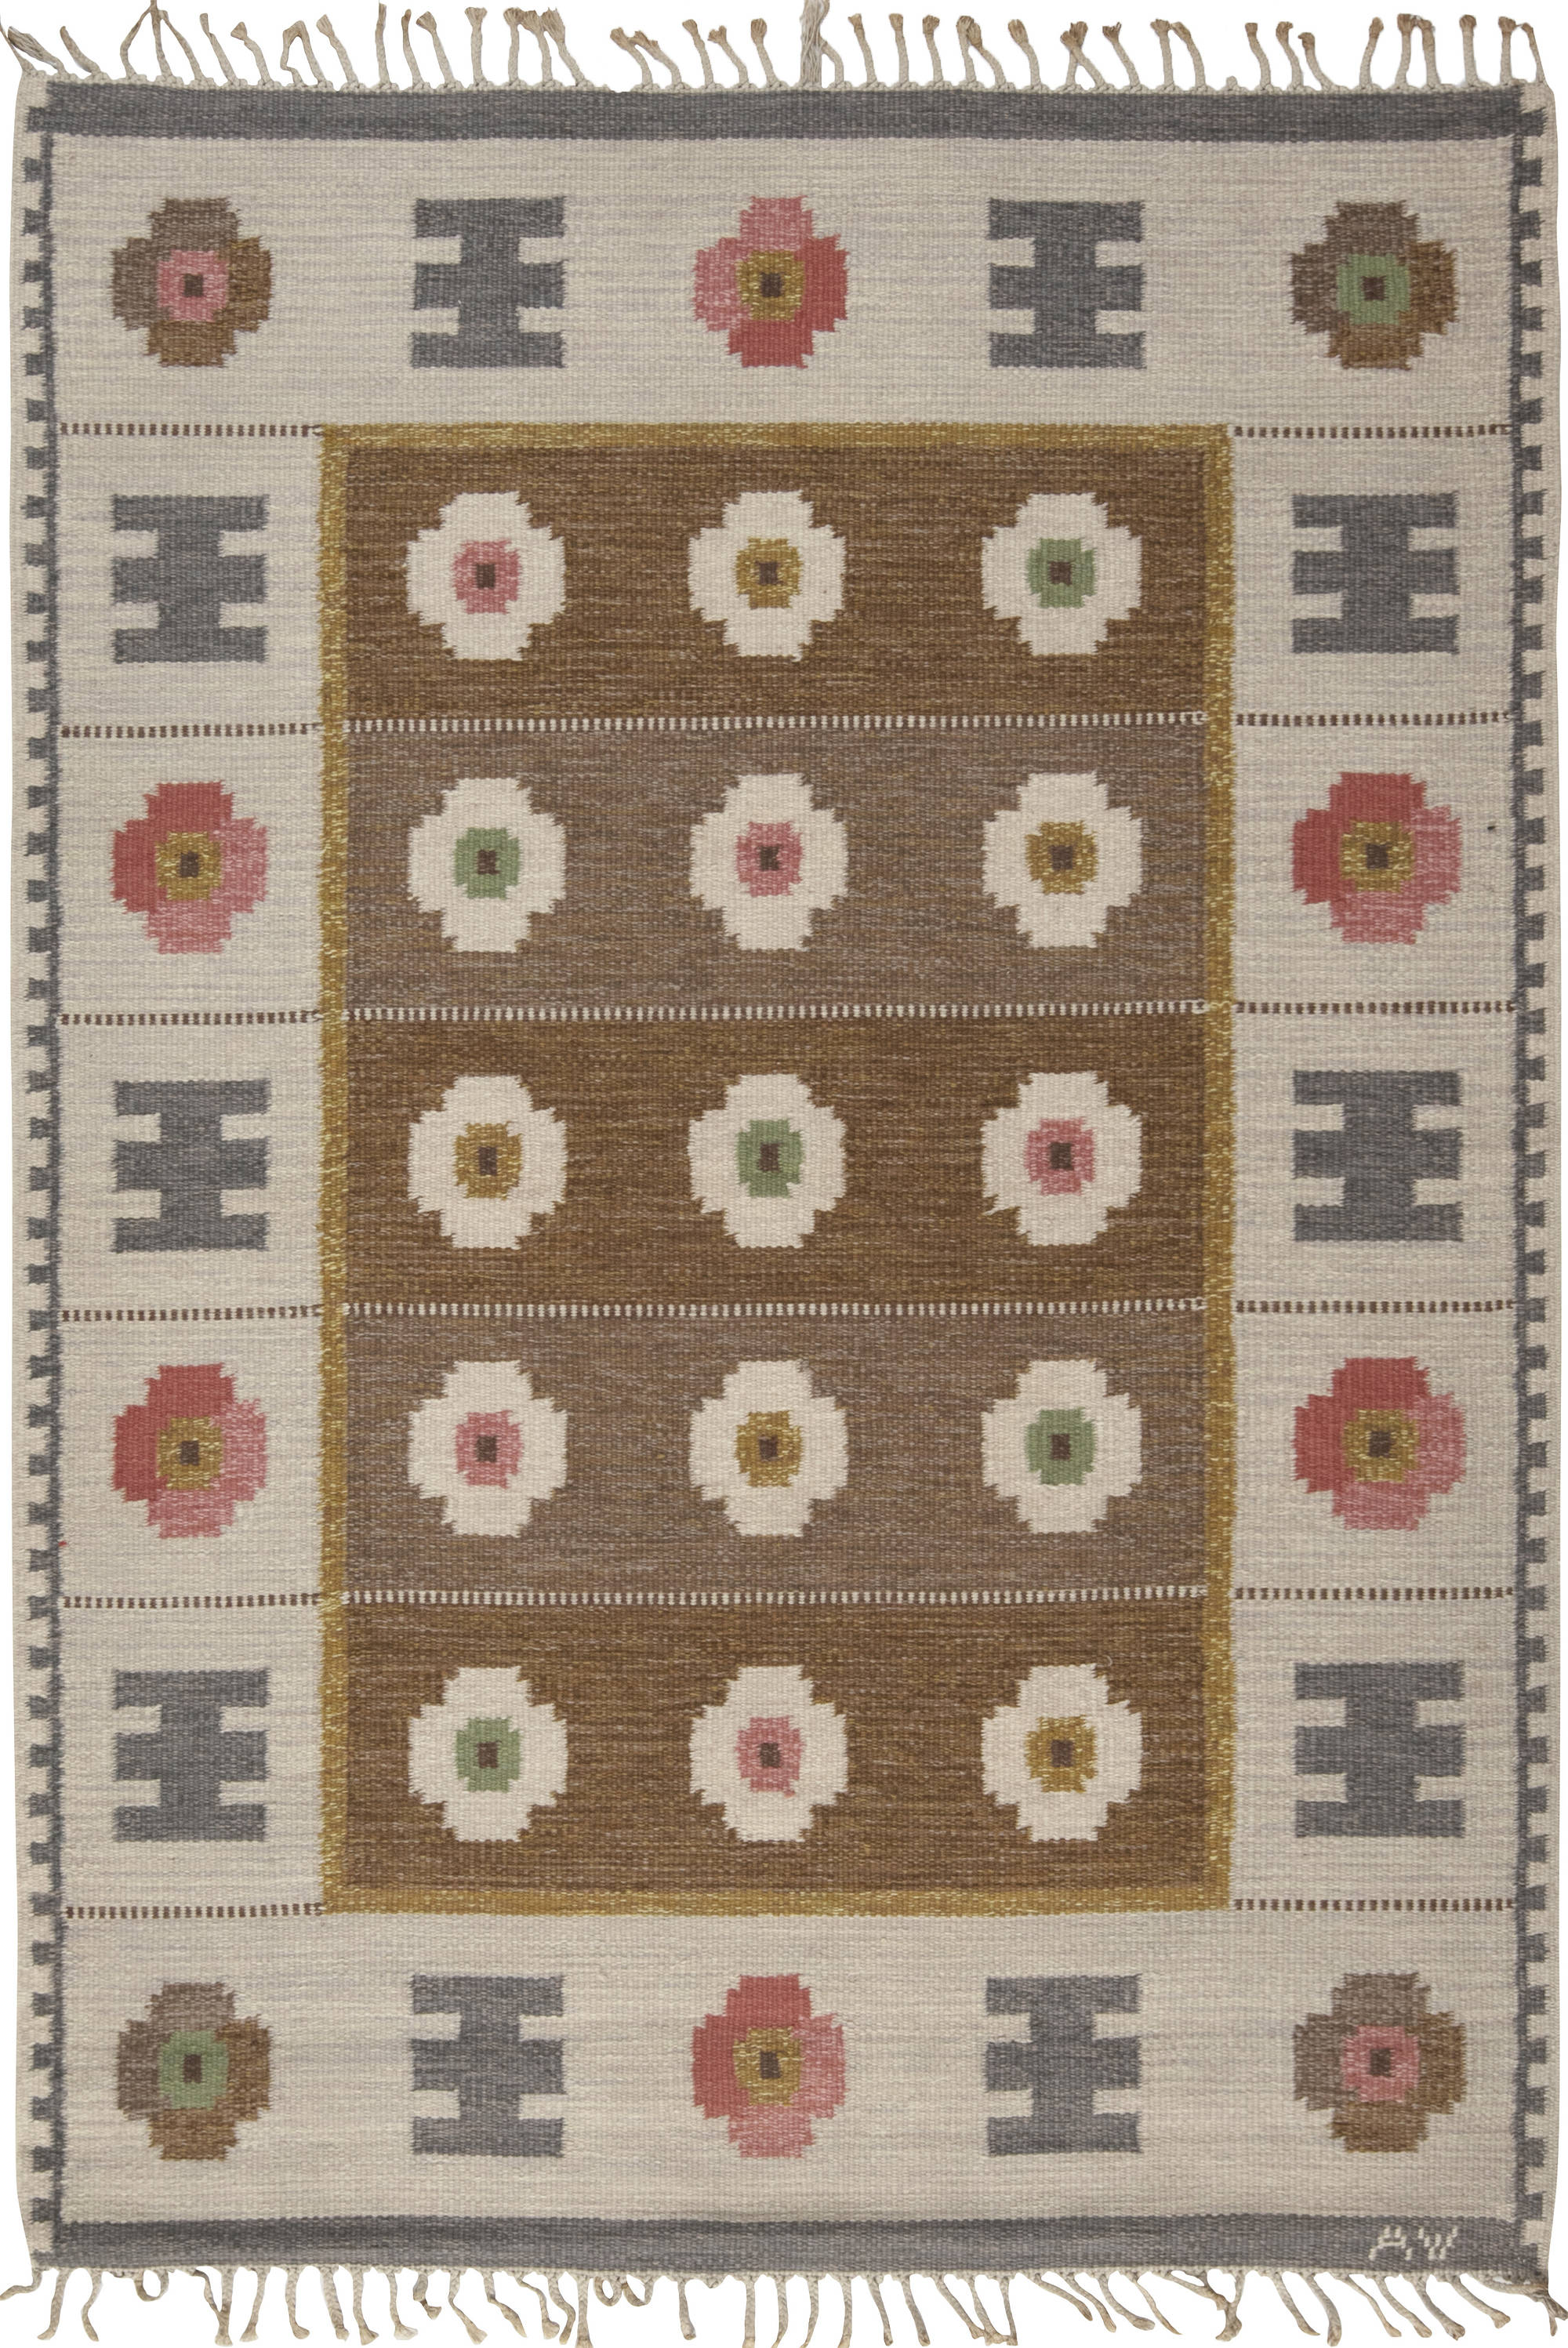 Vintage Swedish Flat Weave Rug Signed With Initials Bh